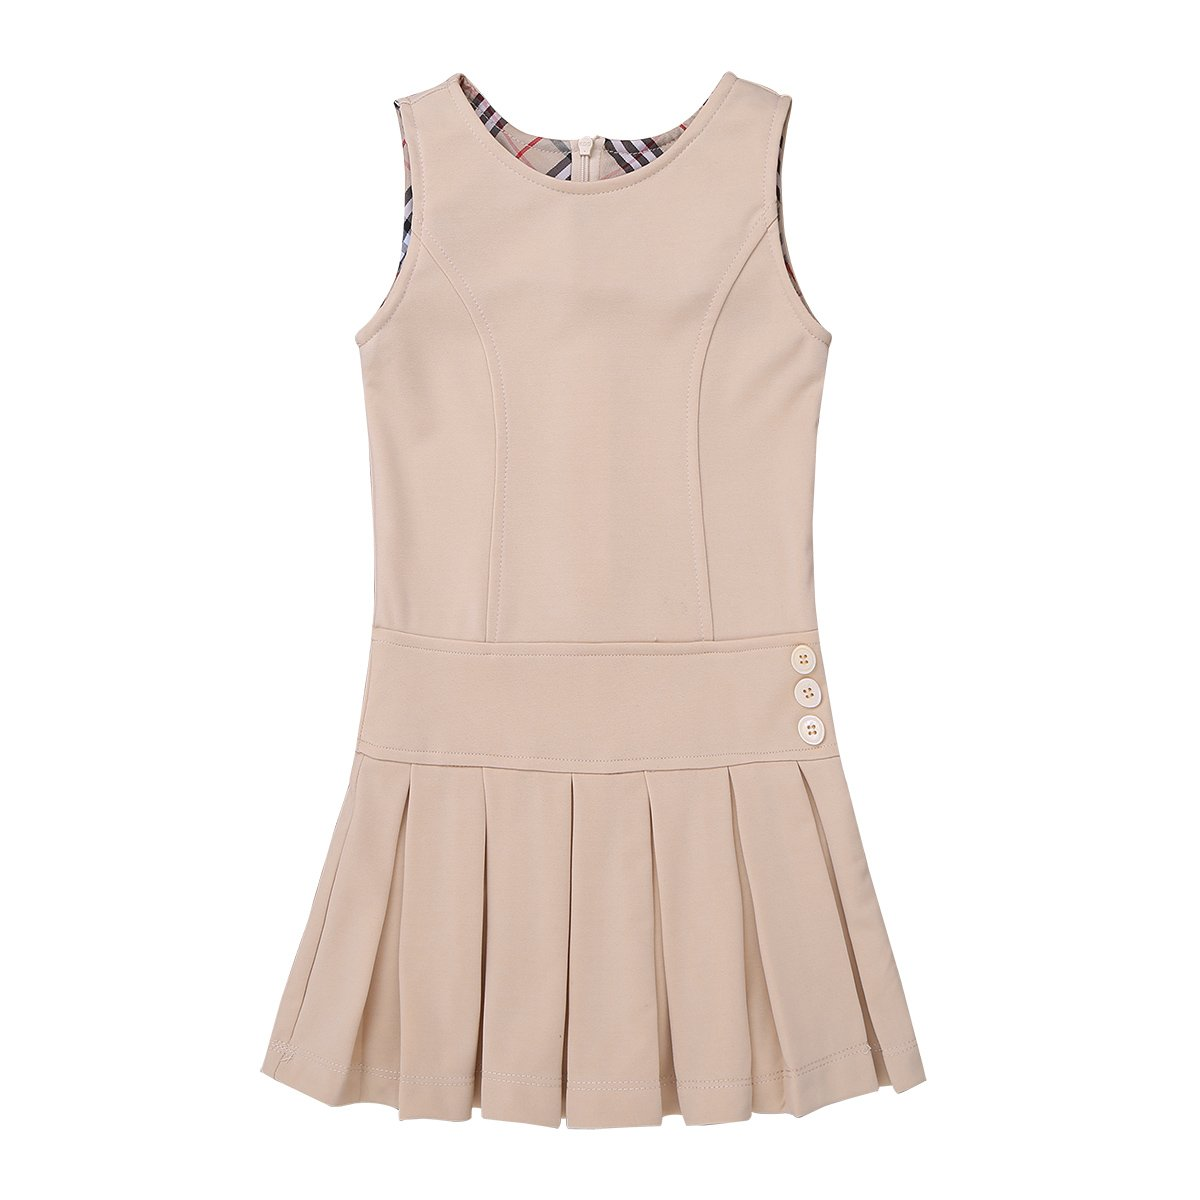 YiZYiF Girls' Kids' Stretchy Pleated Hem Durable School Uniform Jumper Dress Skirt Size 2-9 Khaki 4-5 by YiZYiF (Image #3)